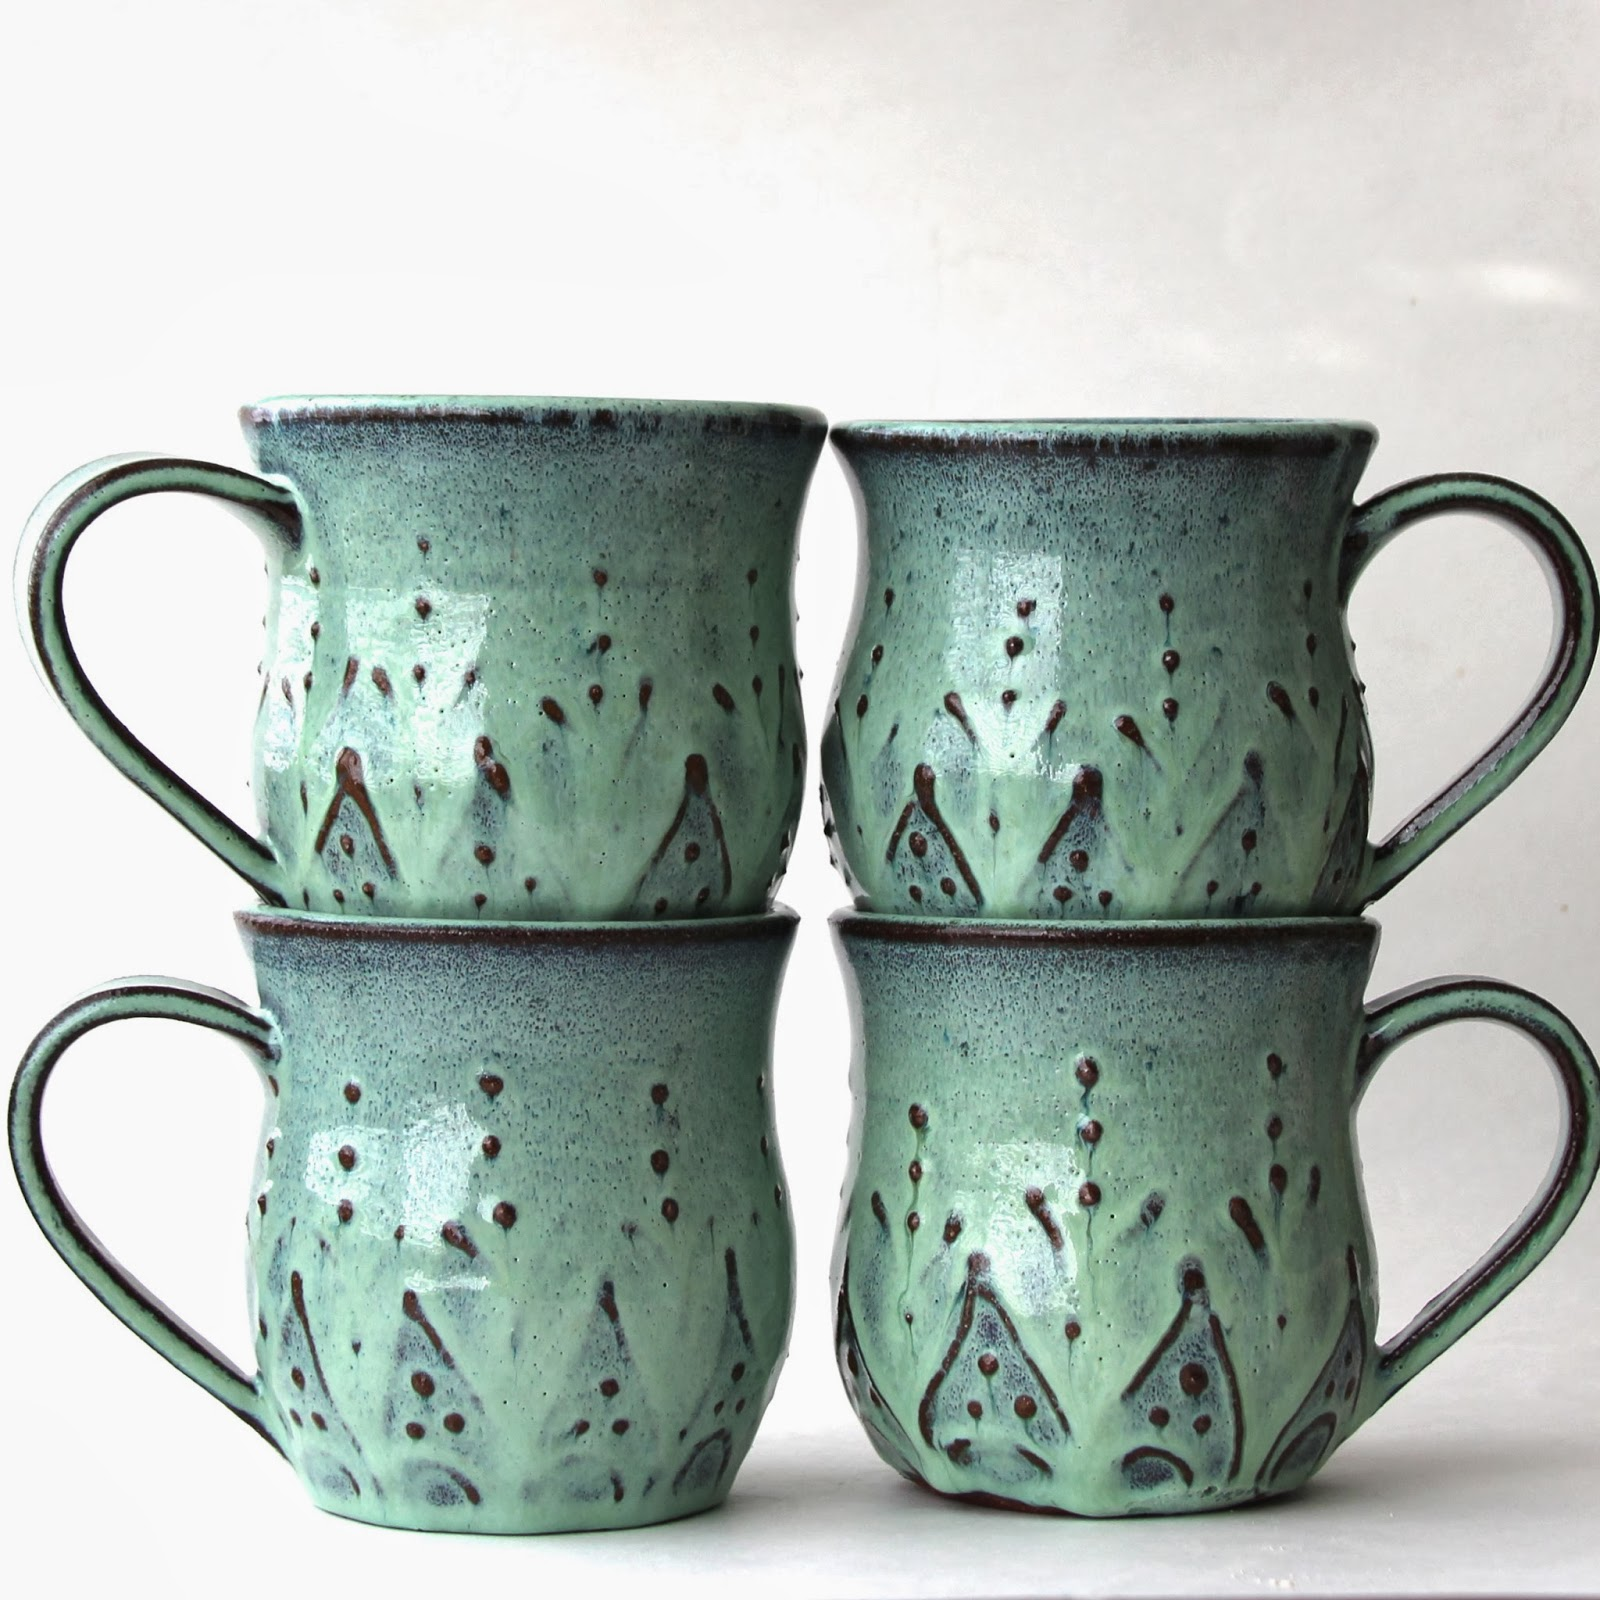 Matching mugs and tumblers. & Back Bay Pottery: French Country Handmade Dinnerware by Back Bay Pottery